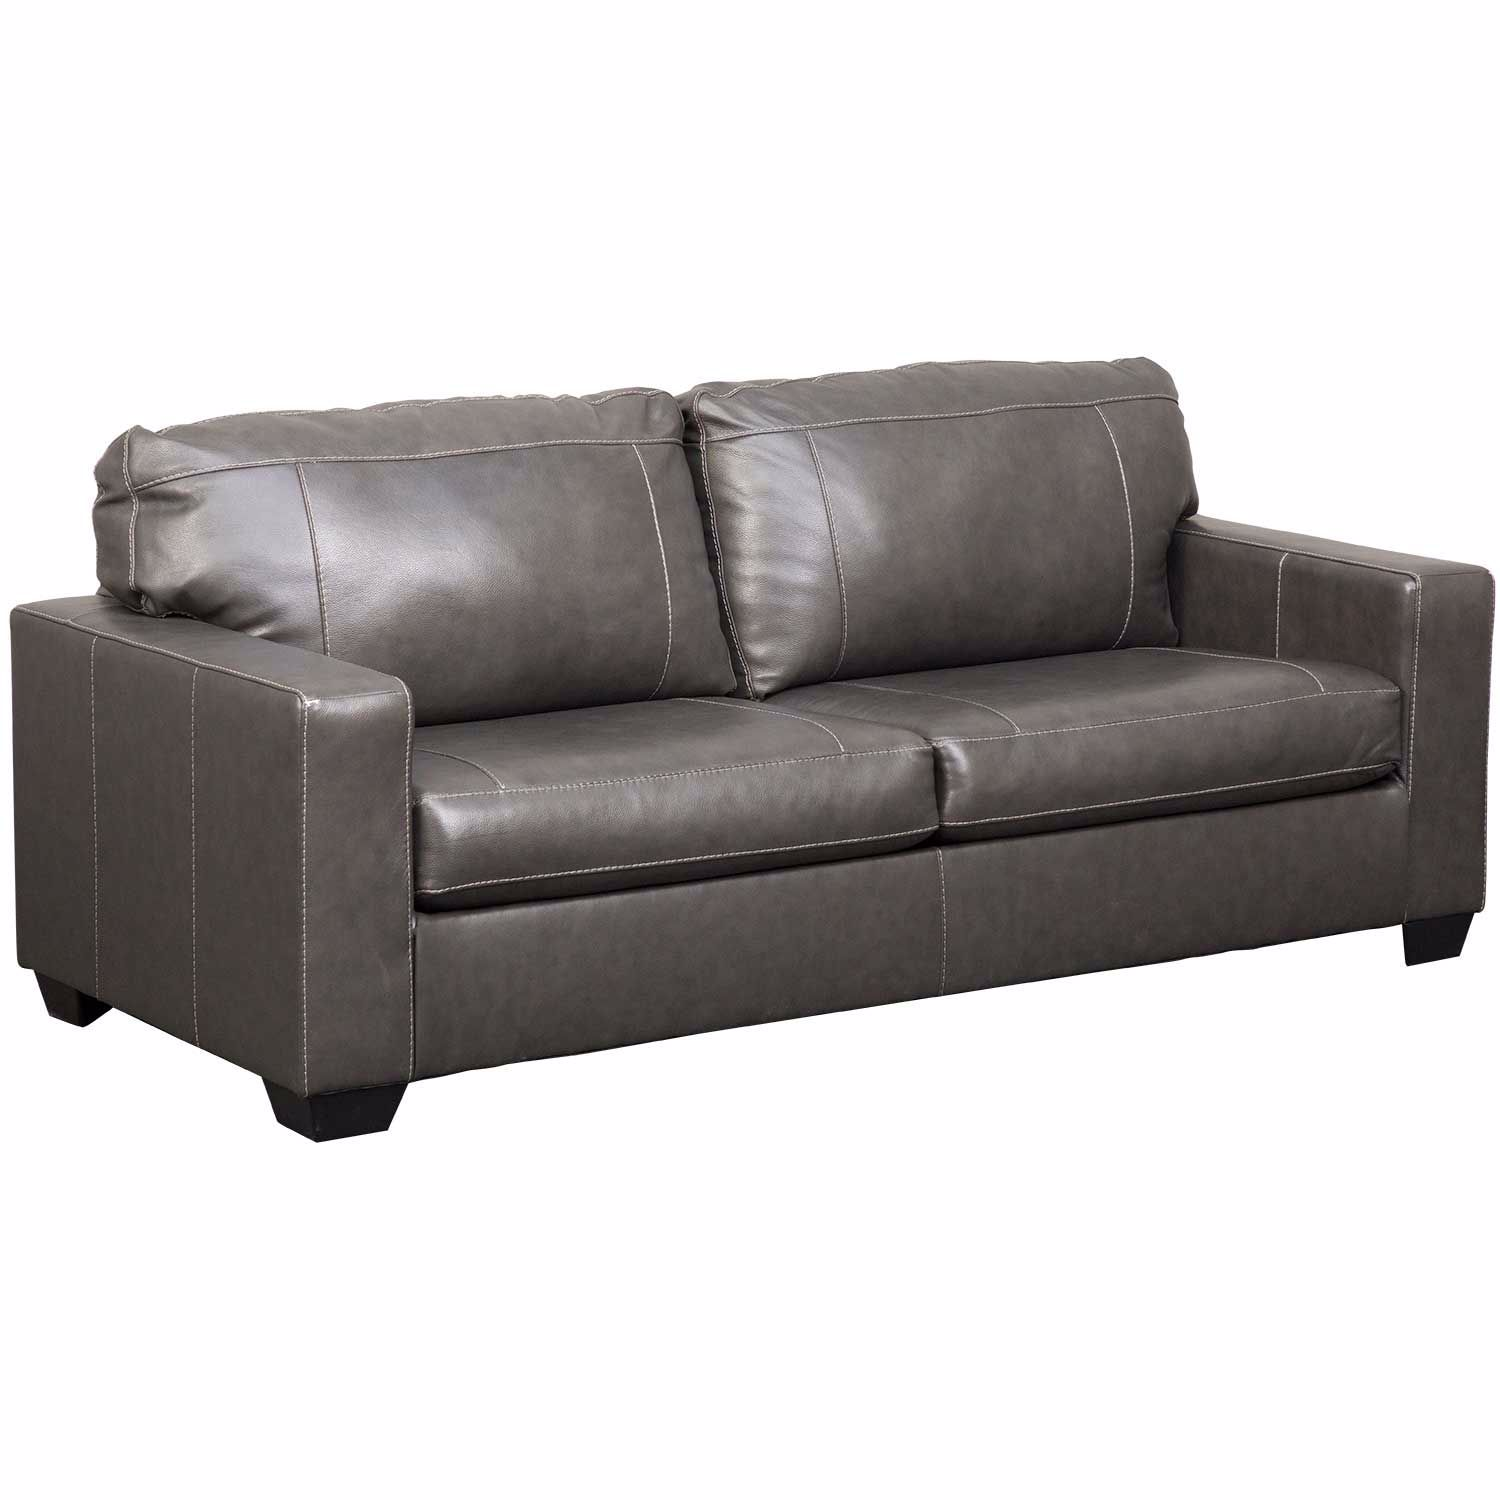 - Morelos Gray Italian Leather Queen Sleeper Sofa 3450339 Ashley